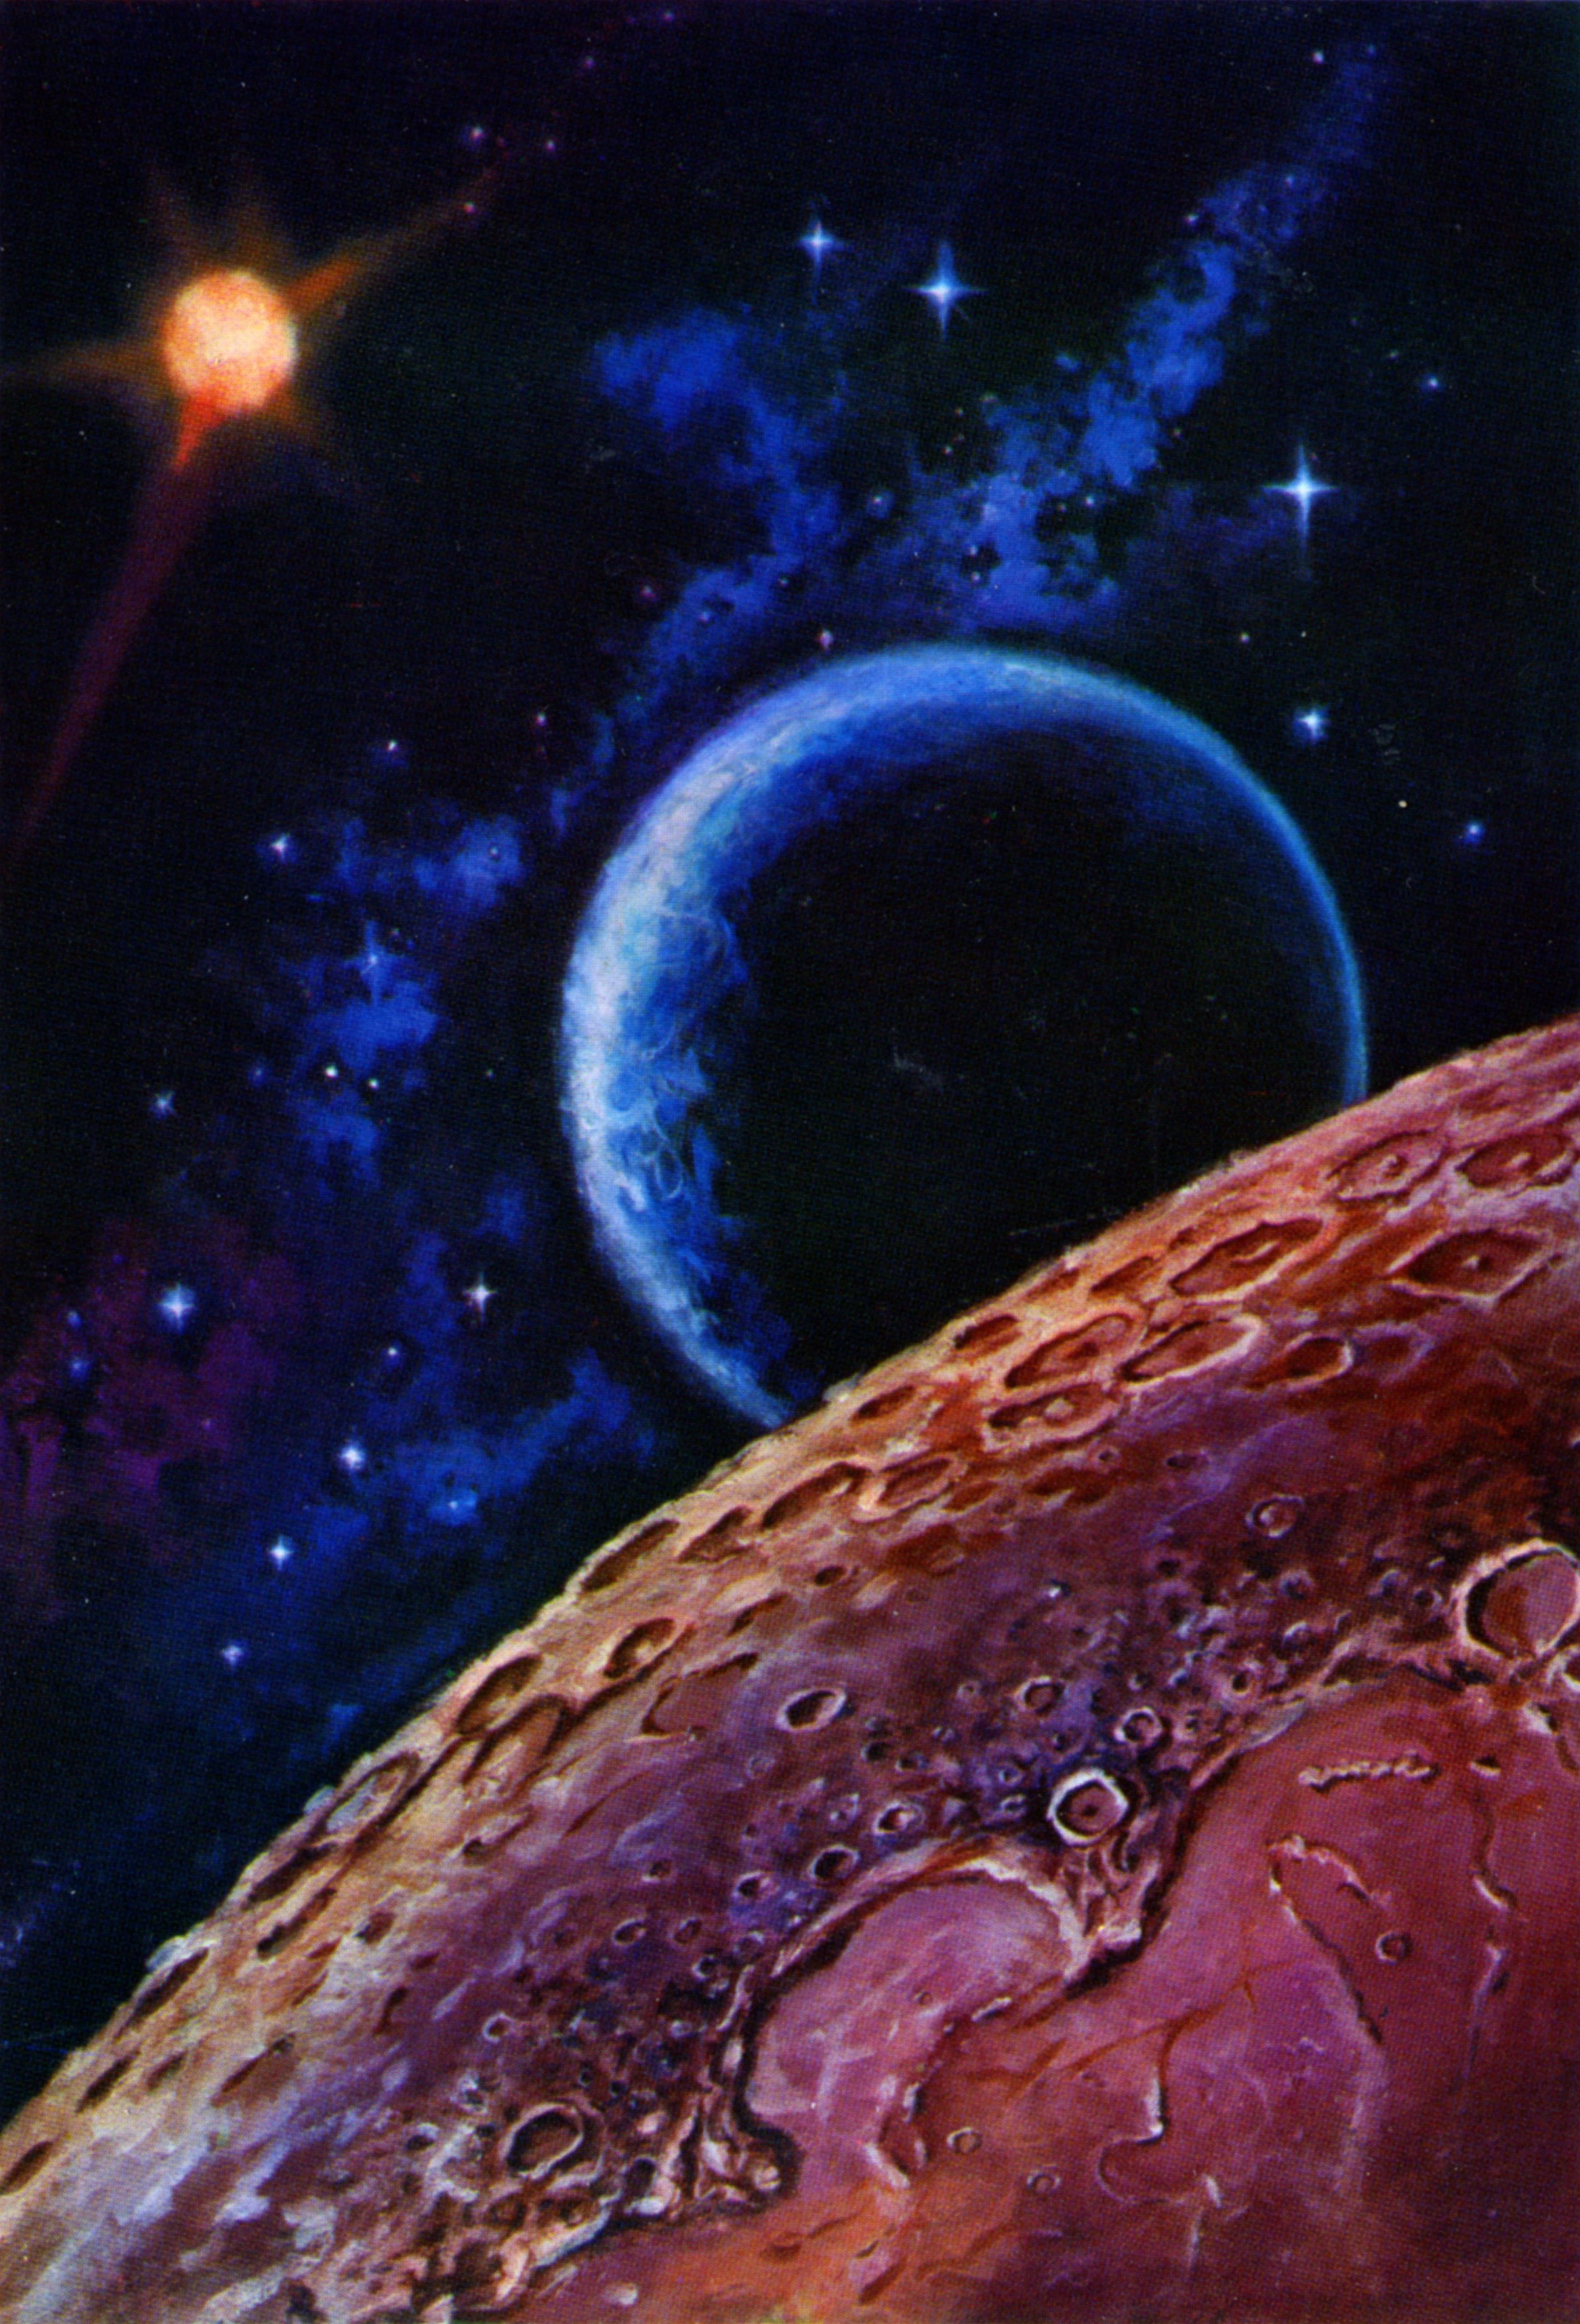 The Earth viewed from the Moon. Illustration by A. Leonov, USSR (Russia), ca 1970. Art - various